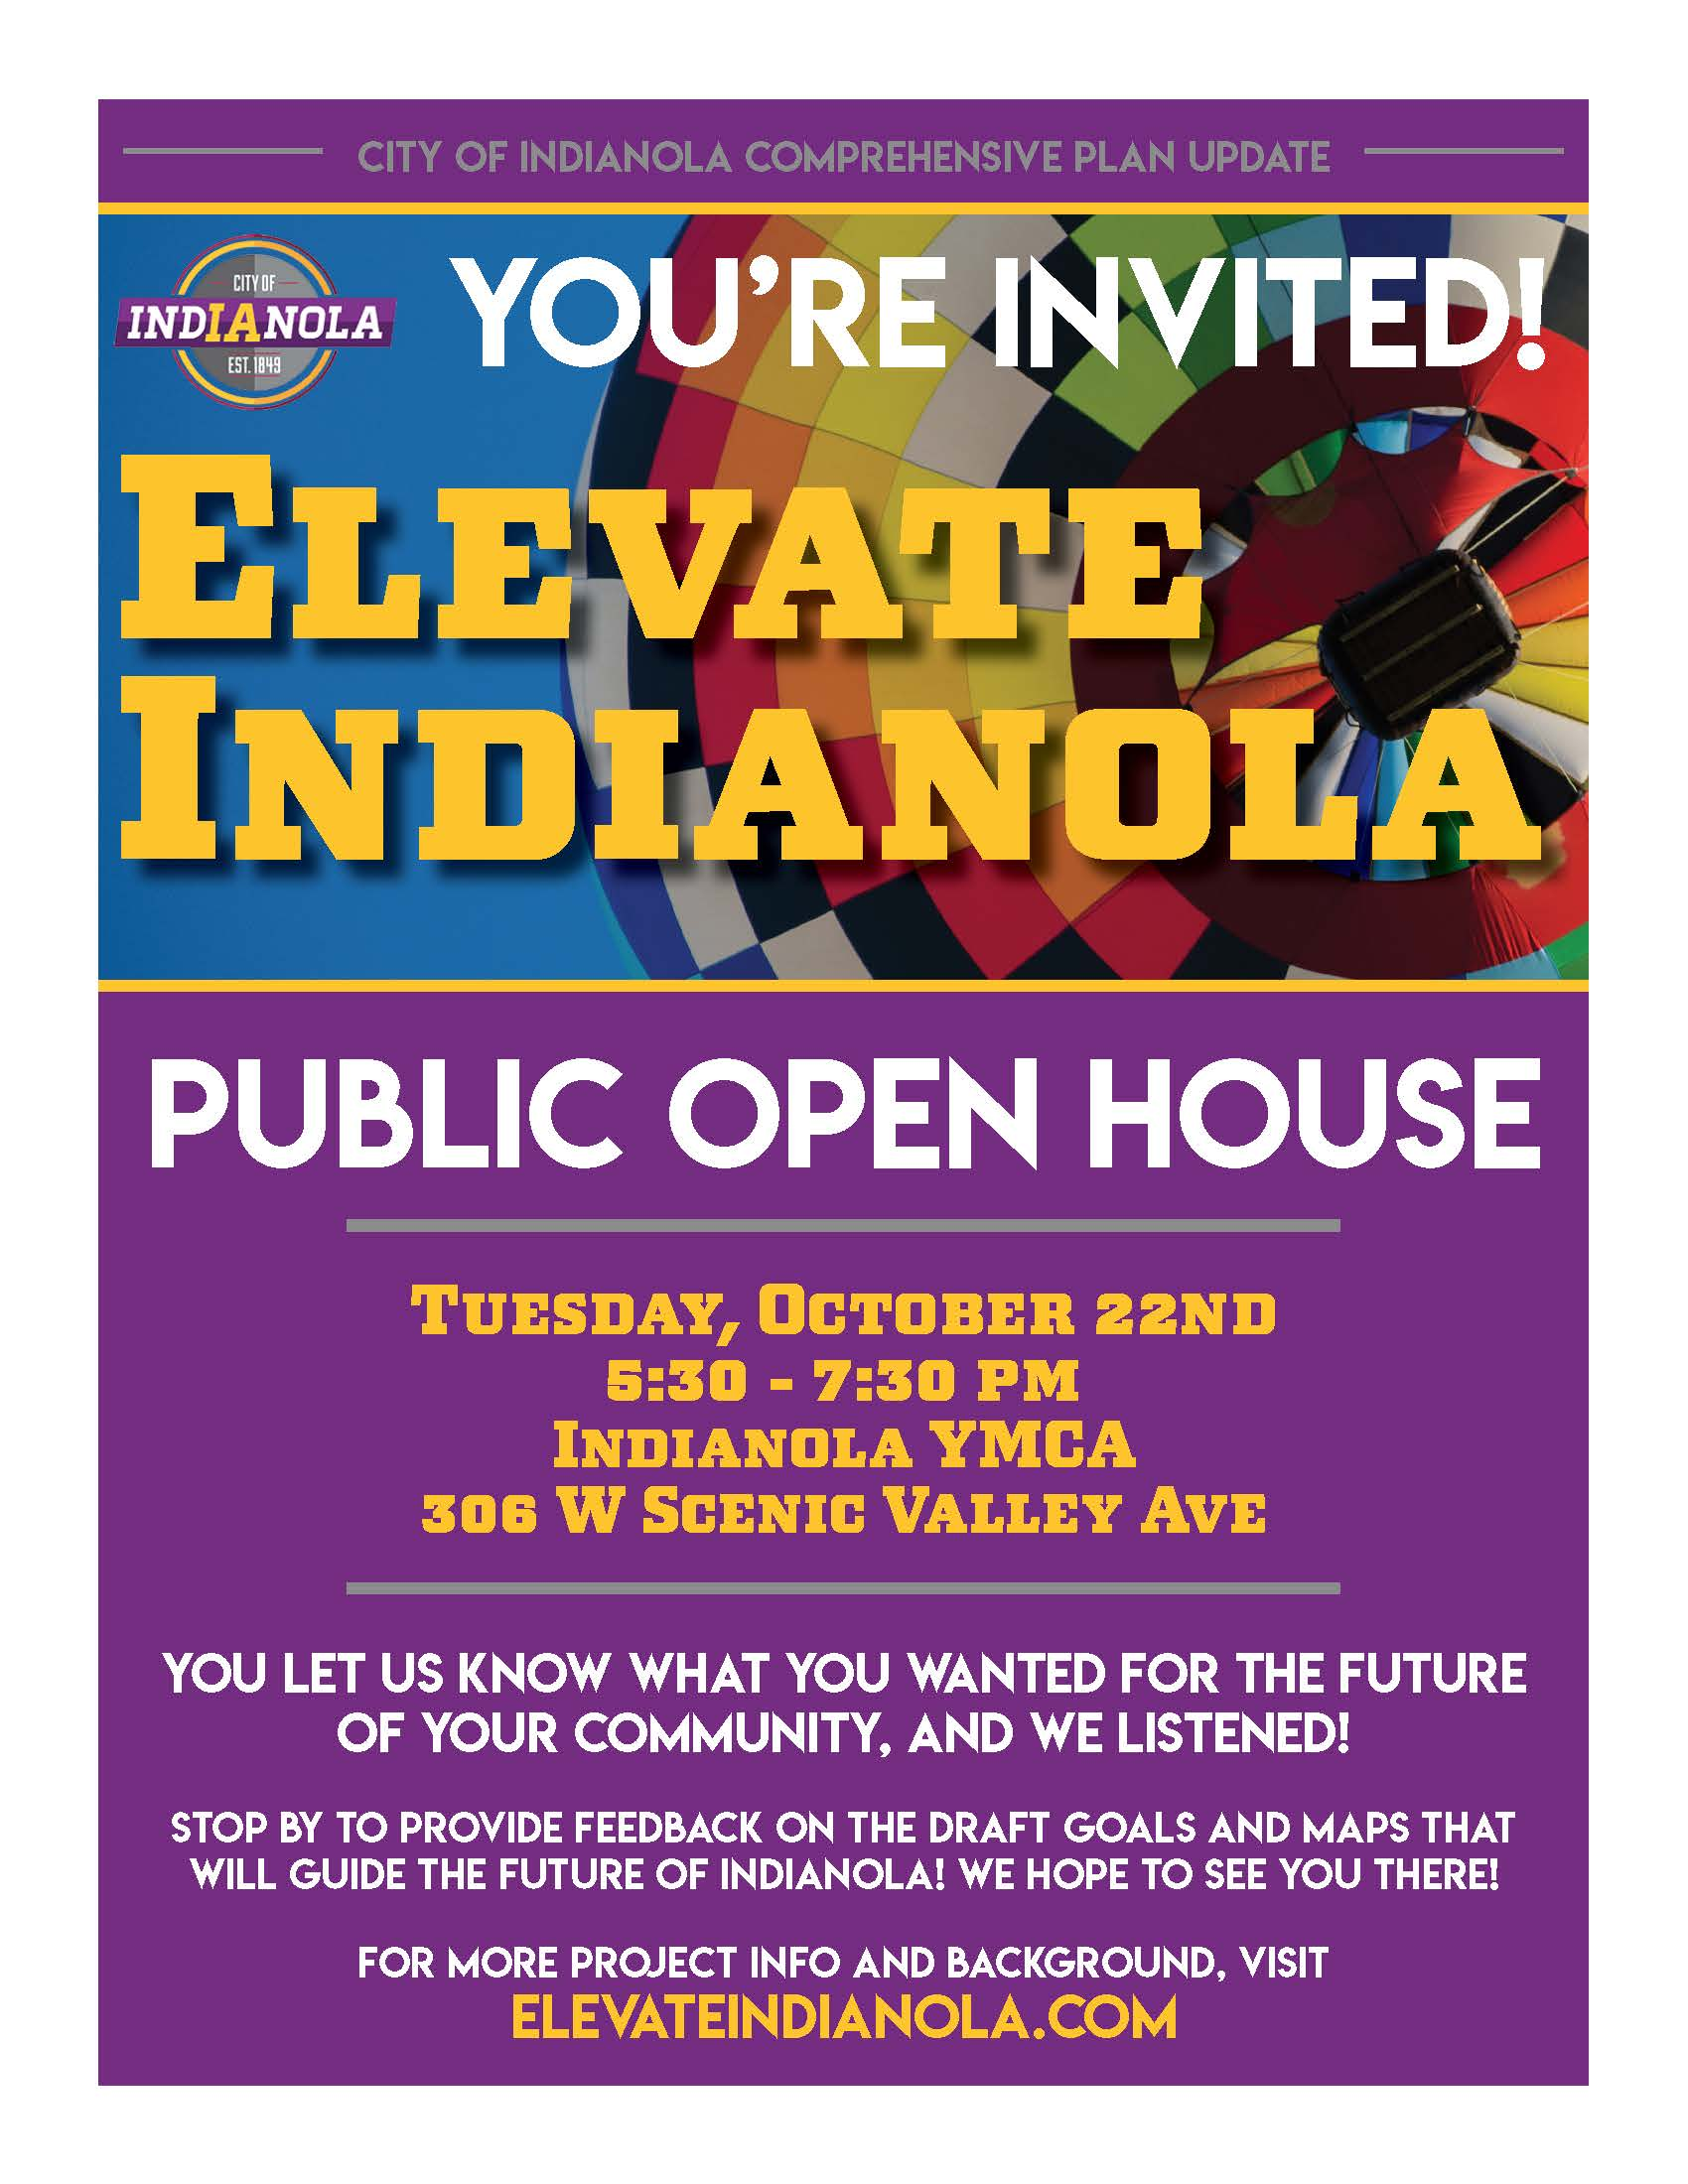 19.10.11_WW_Invite_Open House